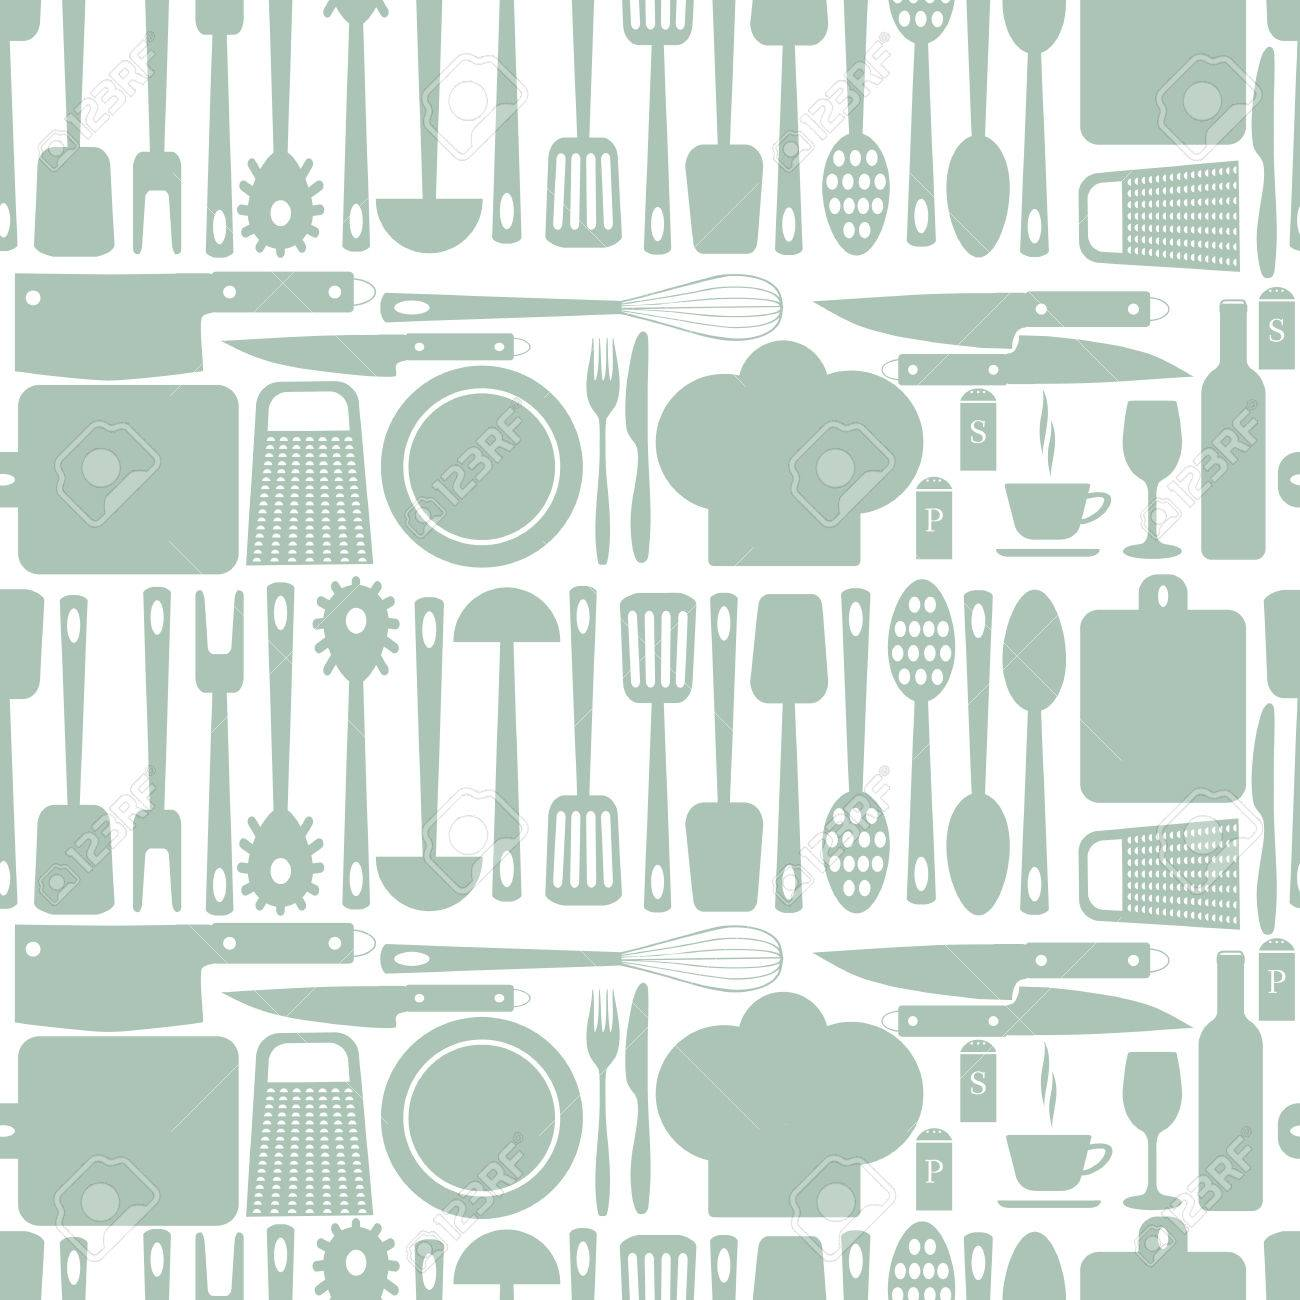 Kitchen Accessories Seamless Pattern Plate Fork Knife Chef Cap Spoon Board Grater Rolling